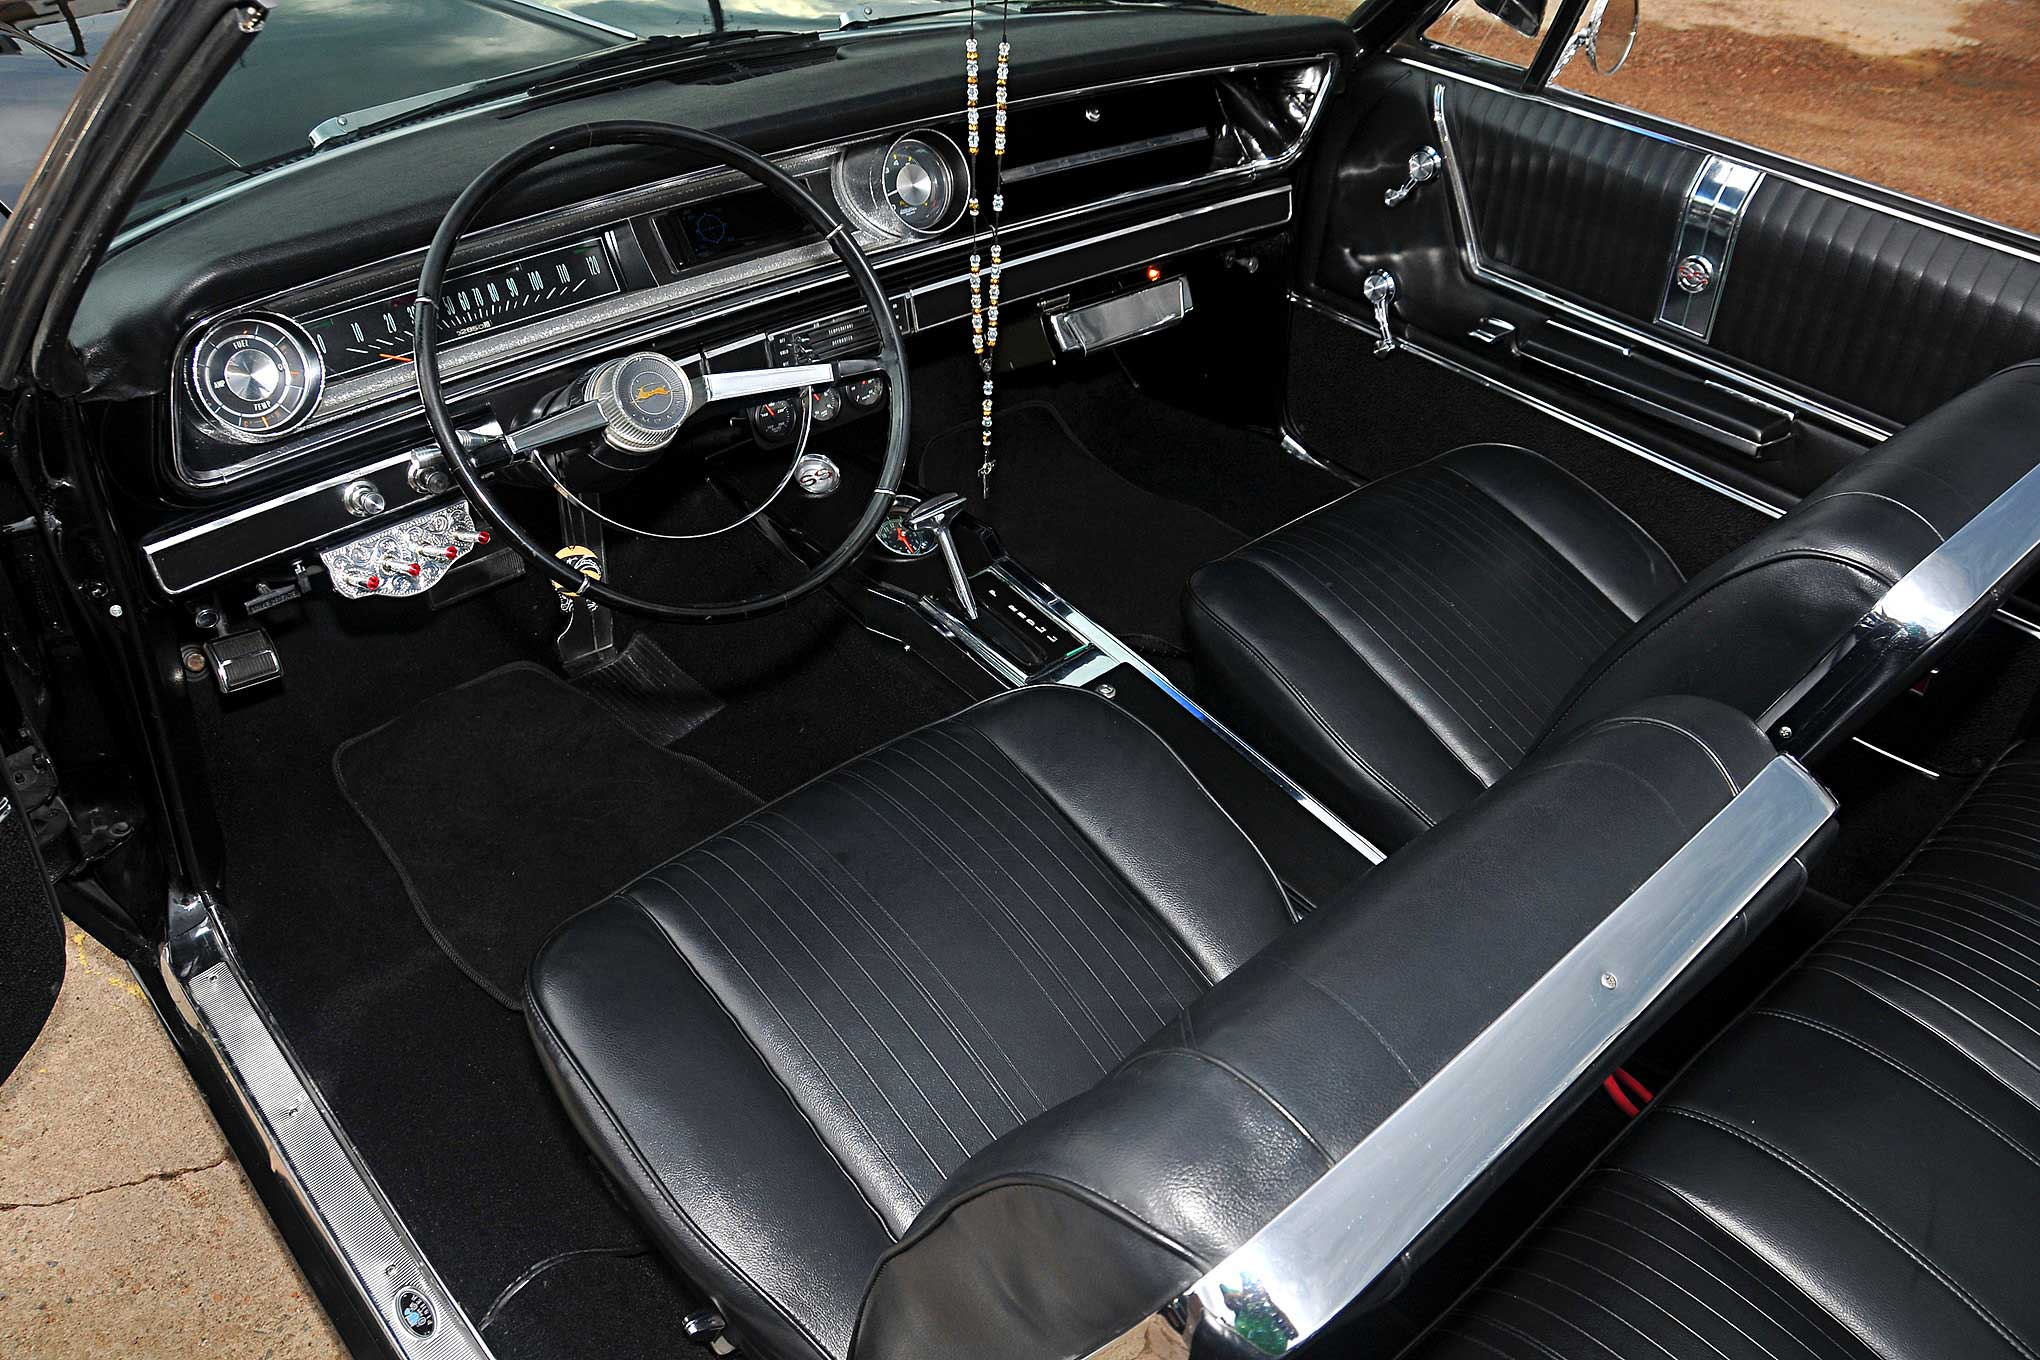 Luis & Nelly Morales' 1965 Chevy Impala SS Convertible